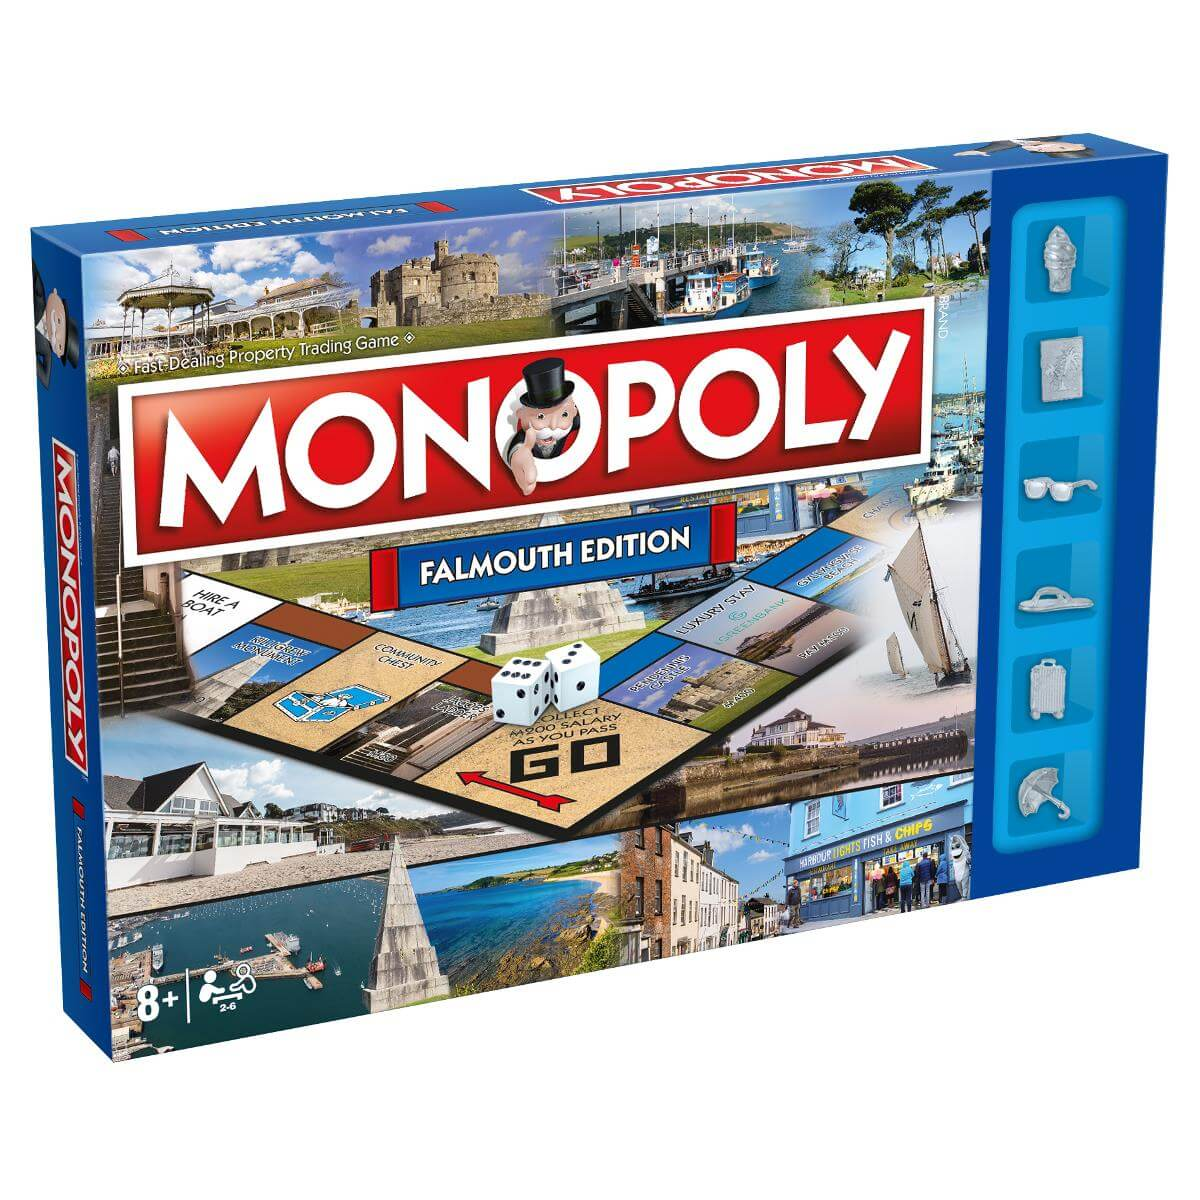 Falmouth Monopoly Board Game Winning Moves Uk